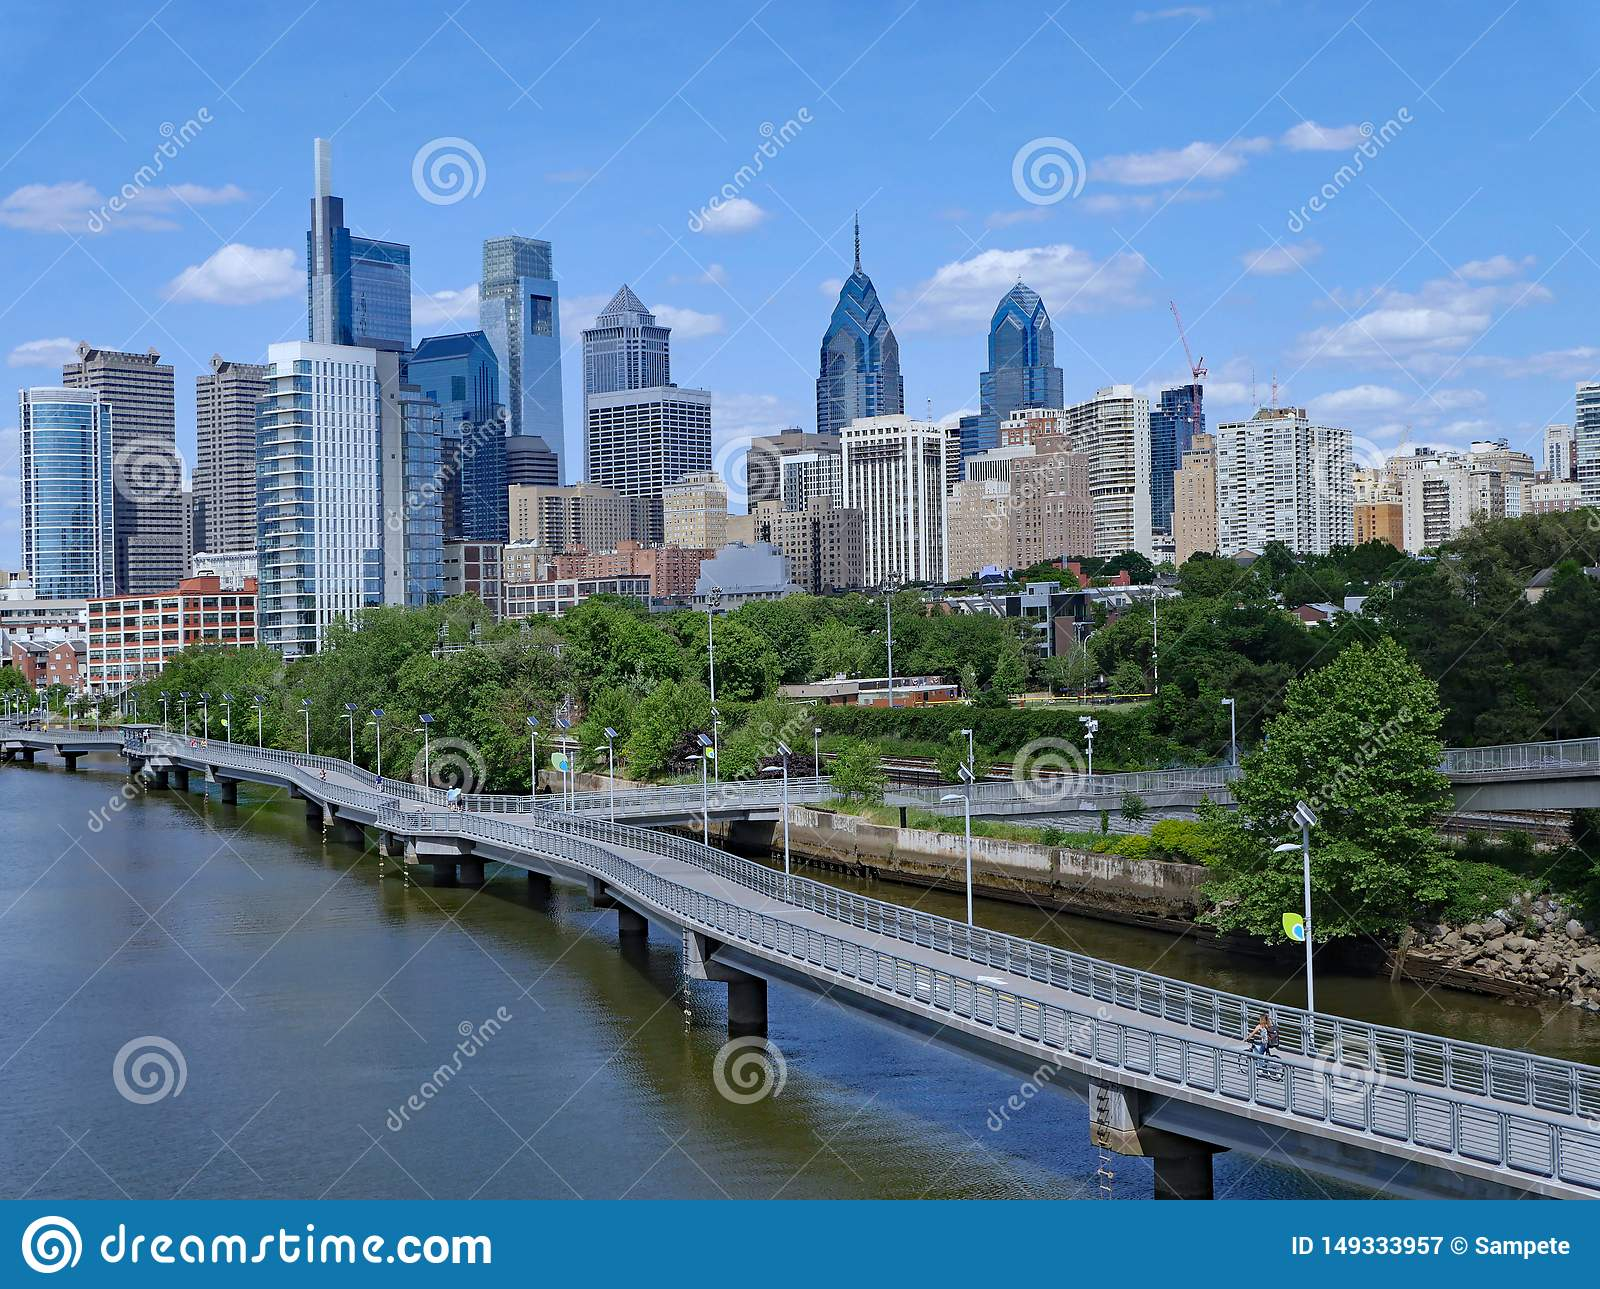 Philadelphia skyline in 2019 with recreational boardwalk along the Schuylkill River